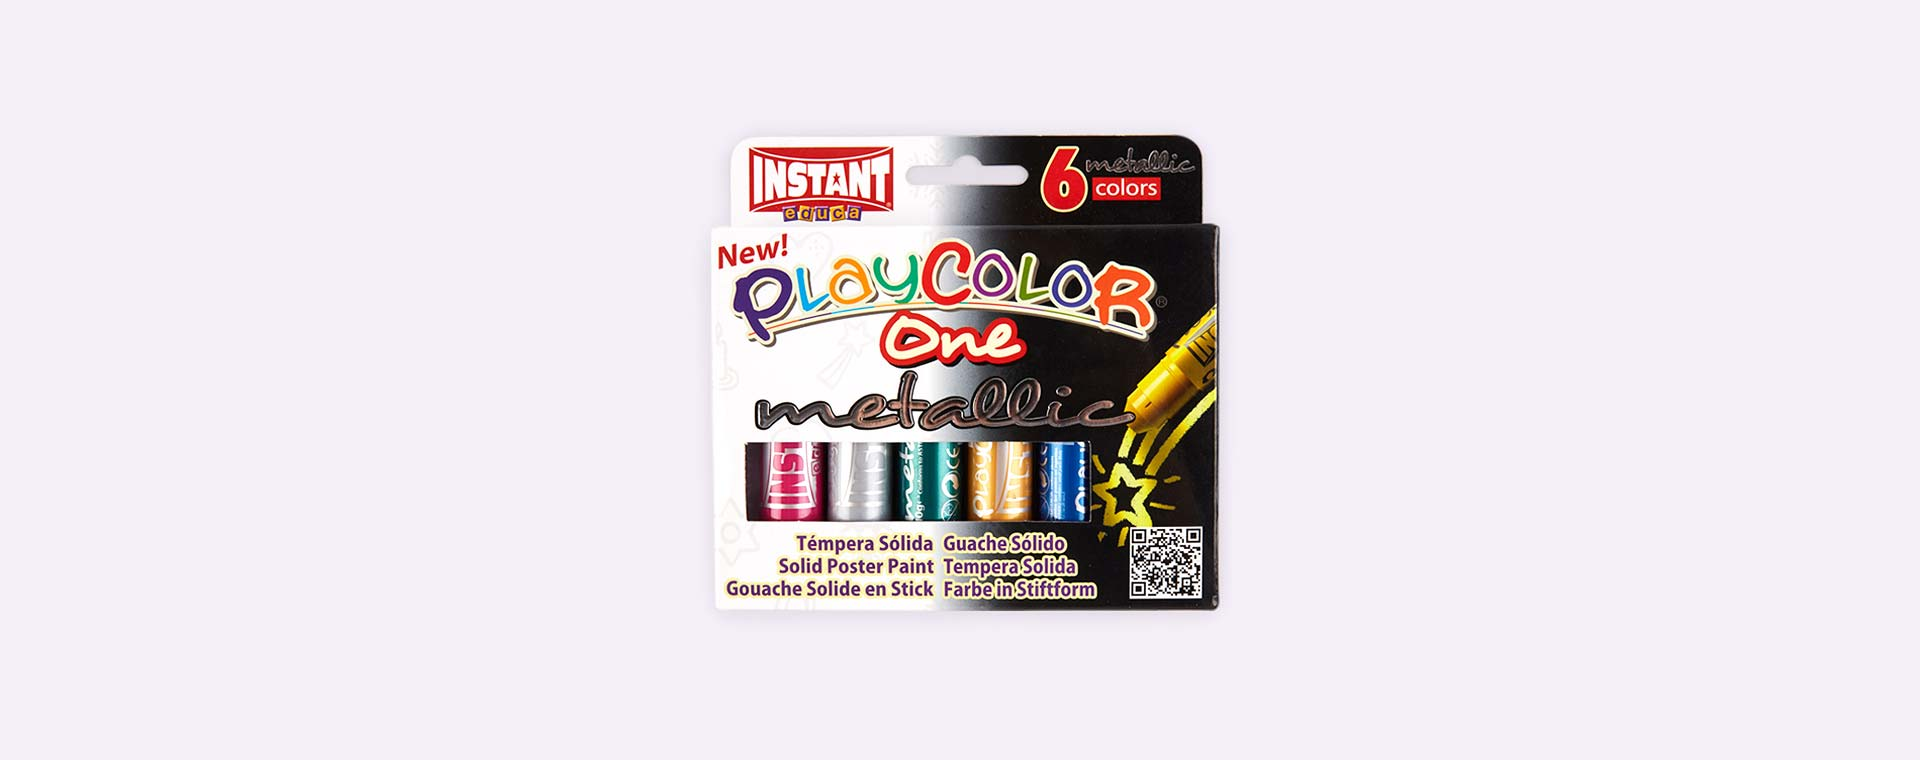 Metallics Playcolor Metallic Poster Paints 6 Pack